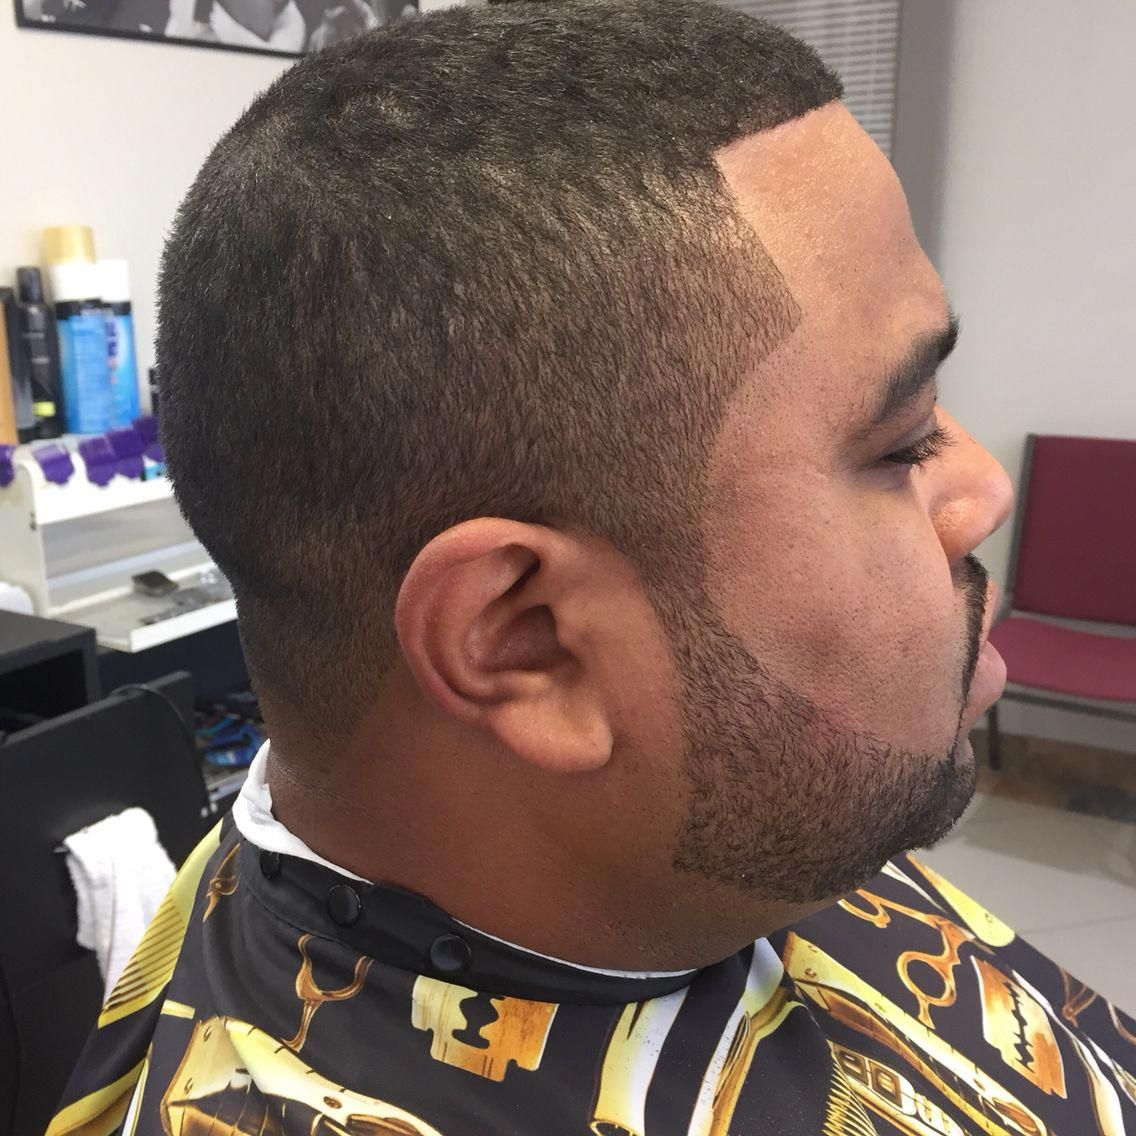 Mens Haircut With A Beard Trim With A Straight Razor Outline